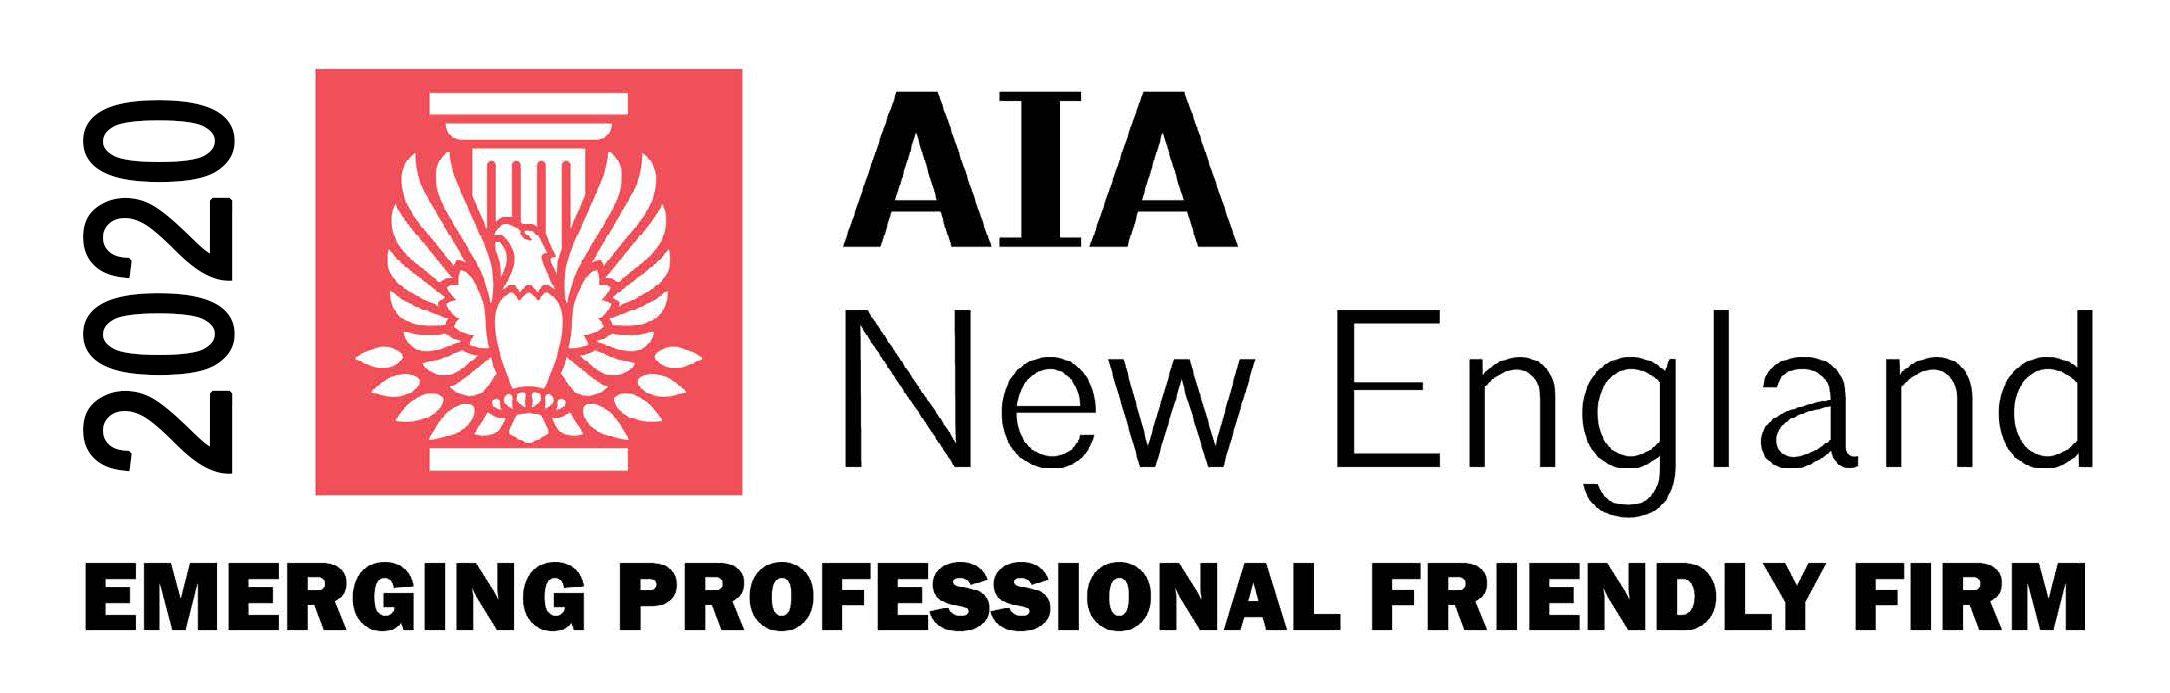 2020 AIA New England Emerging Professional Friendly Firm